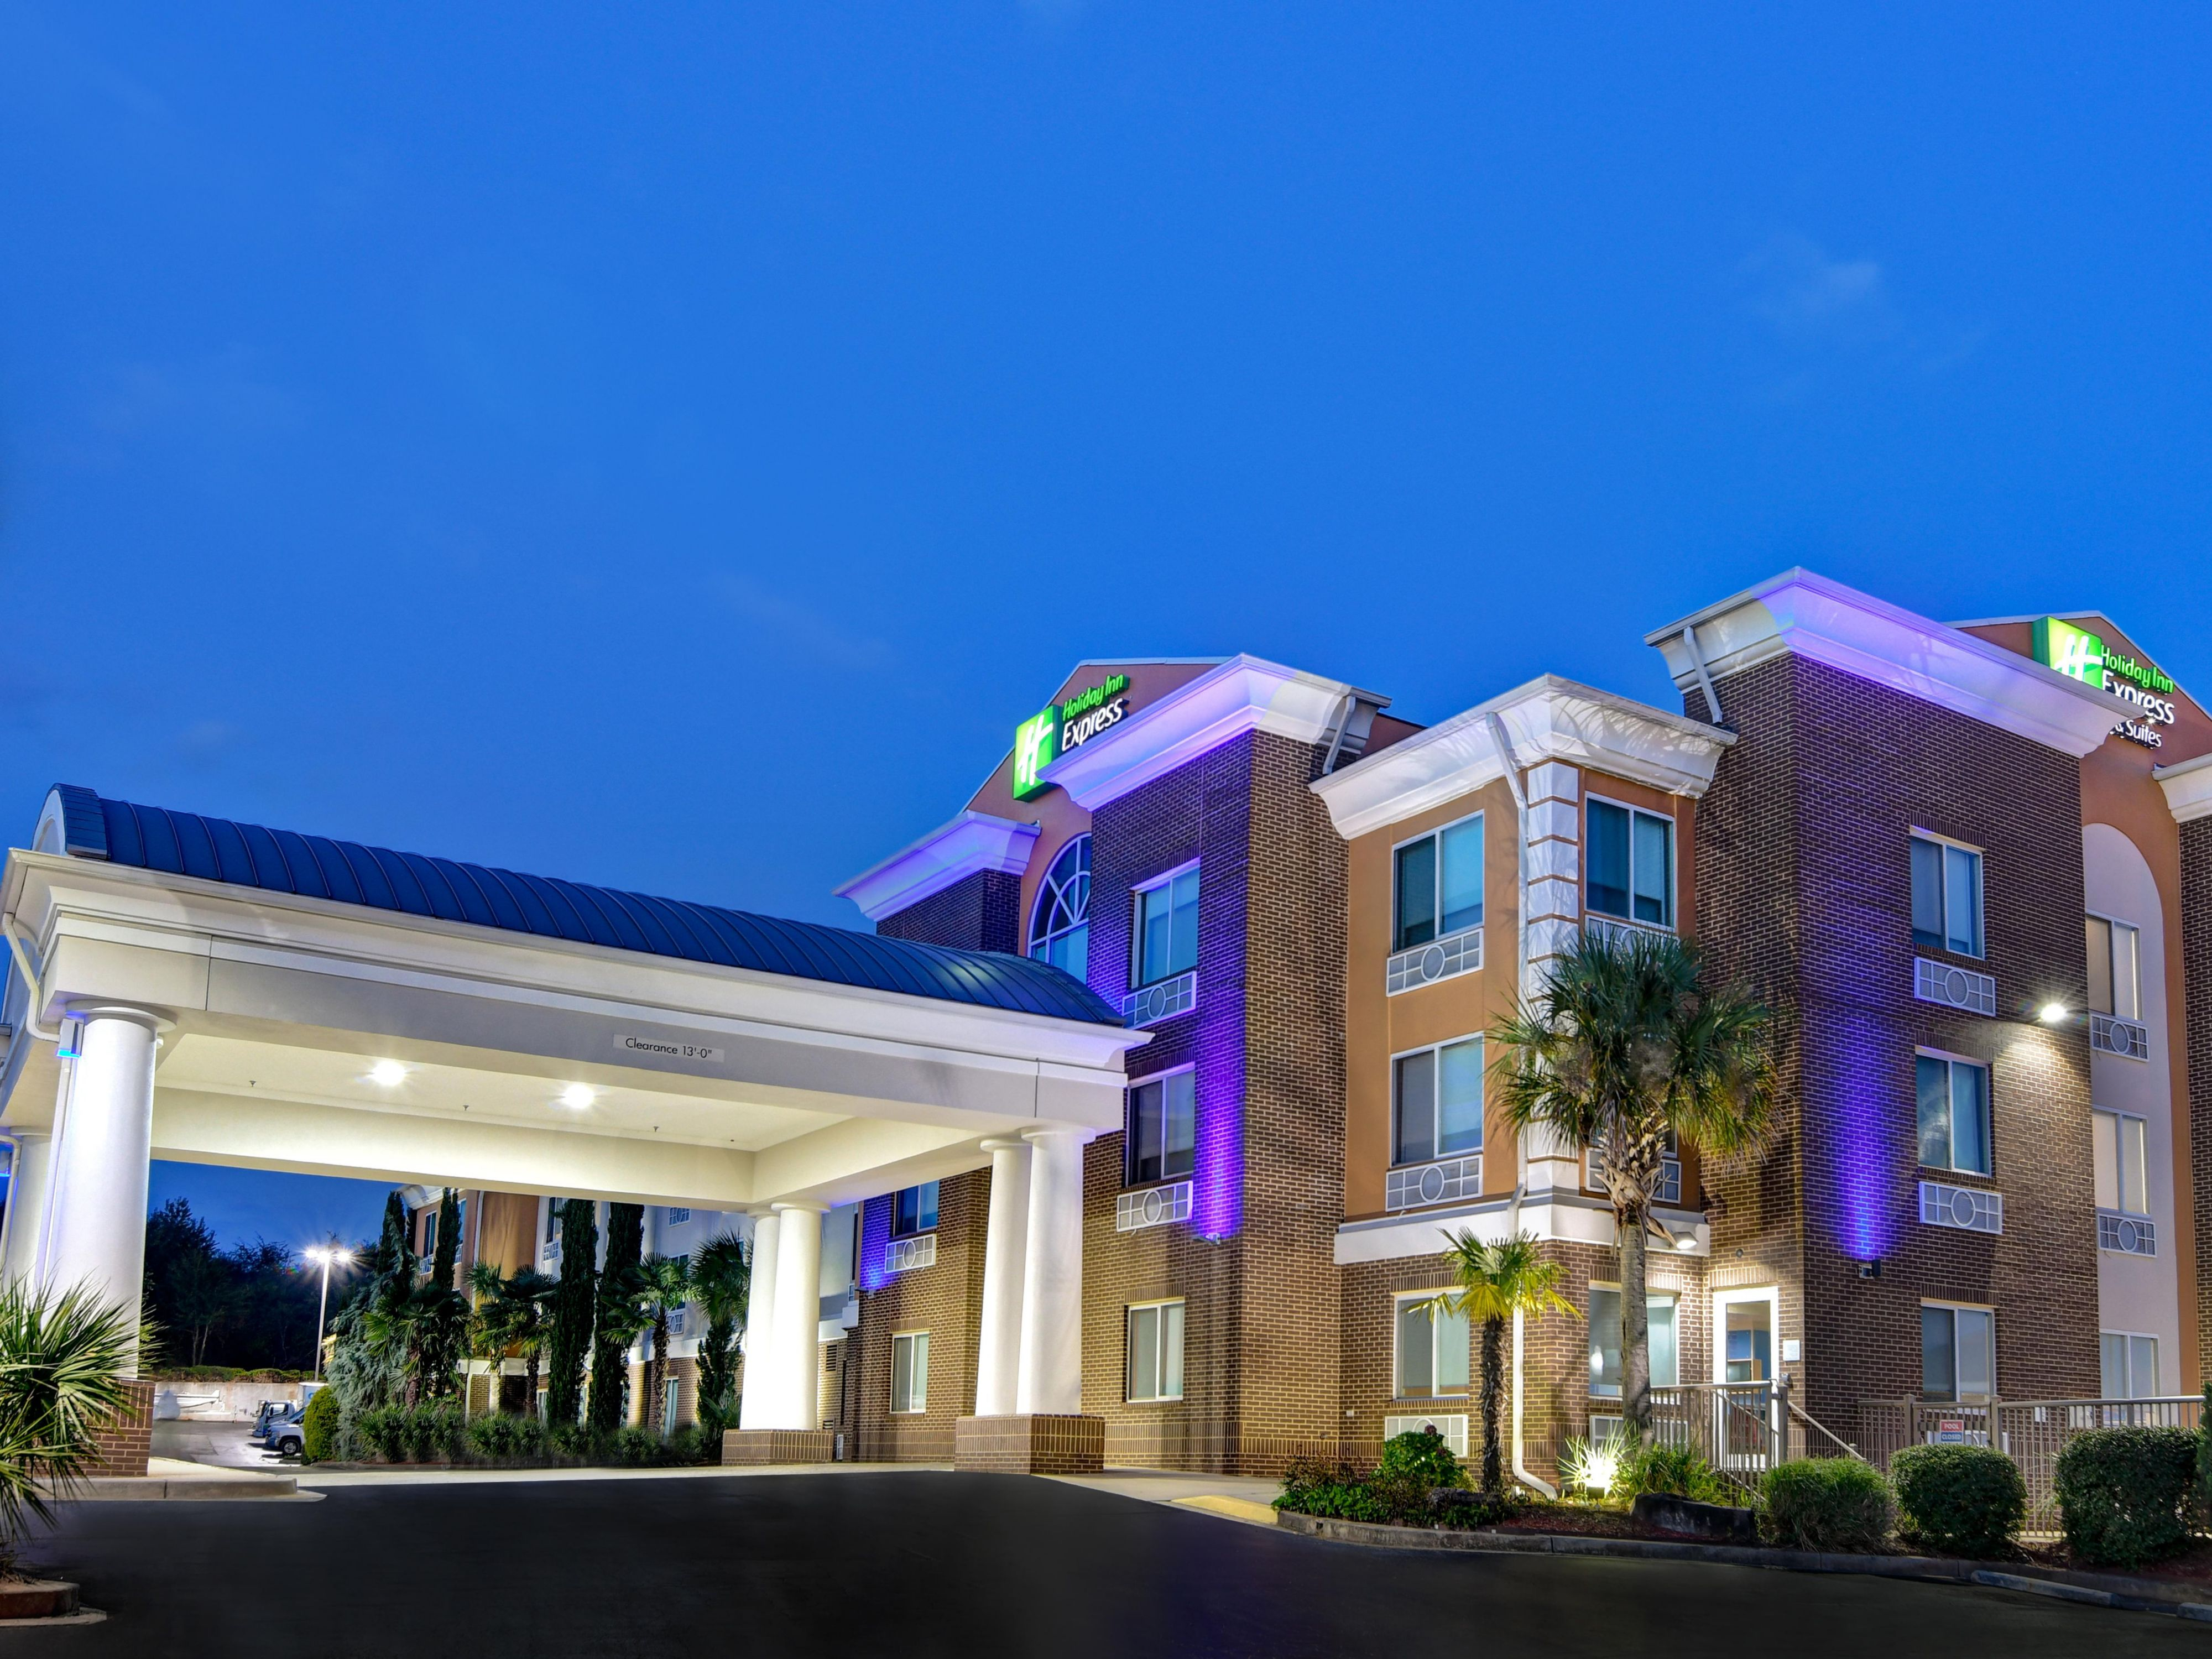 hotels in anderson sc holiday inn express suites anderson i 85 hwy 76 ex 19b holiday inn express suites anderson i